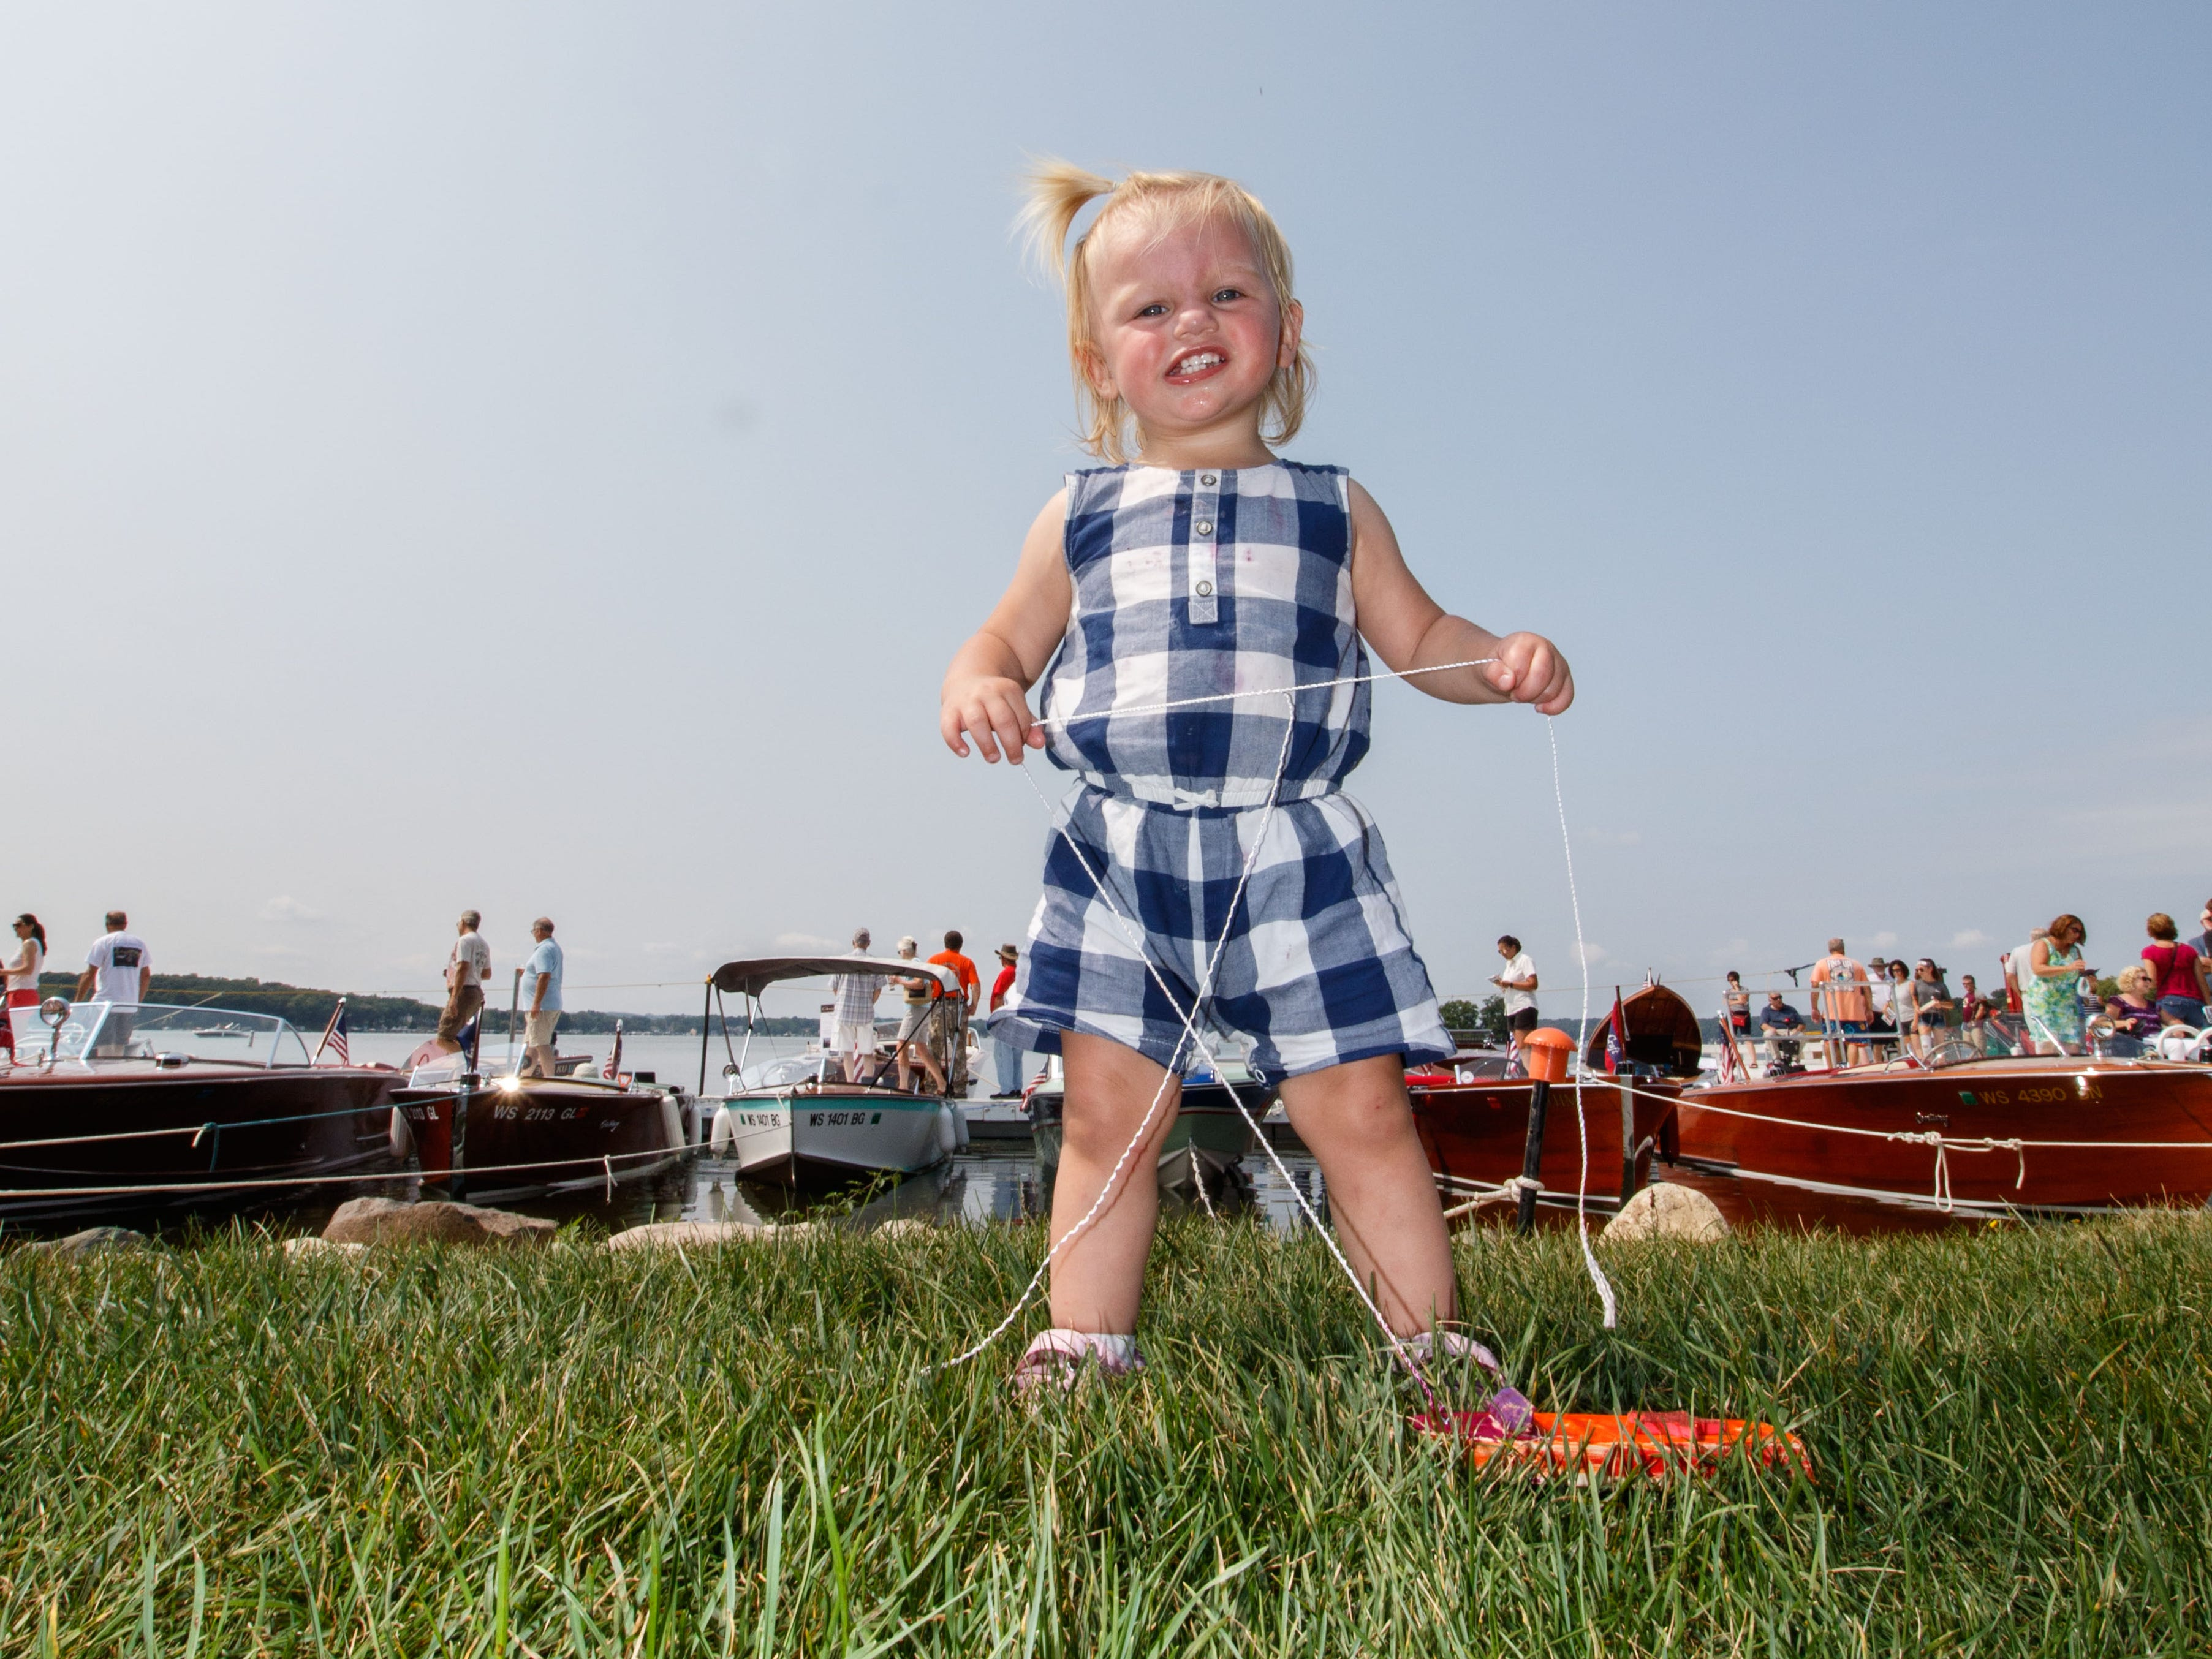 Seventeen-month-old Adley Holdmann of Pewaukee plays with a toy boat during the 14th annual Pewaukee Antique & Classic Boat Show & Vintage Car Show on Saturday, August 18, 2018.